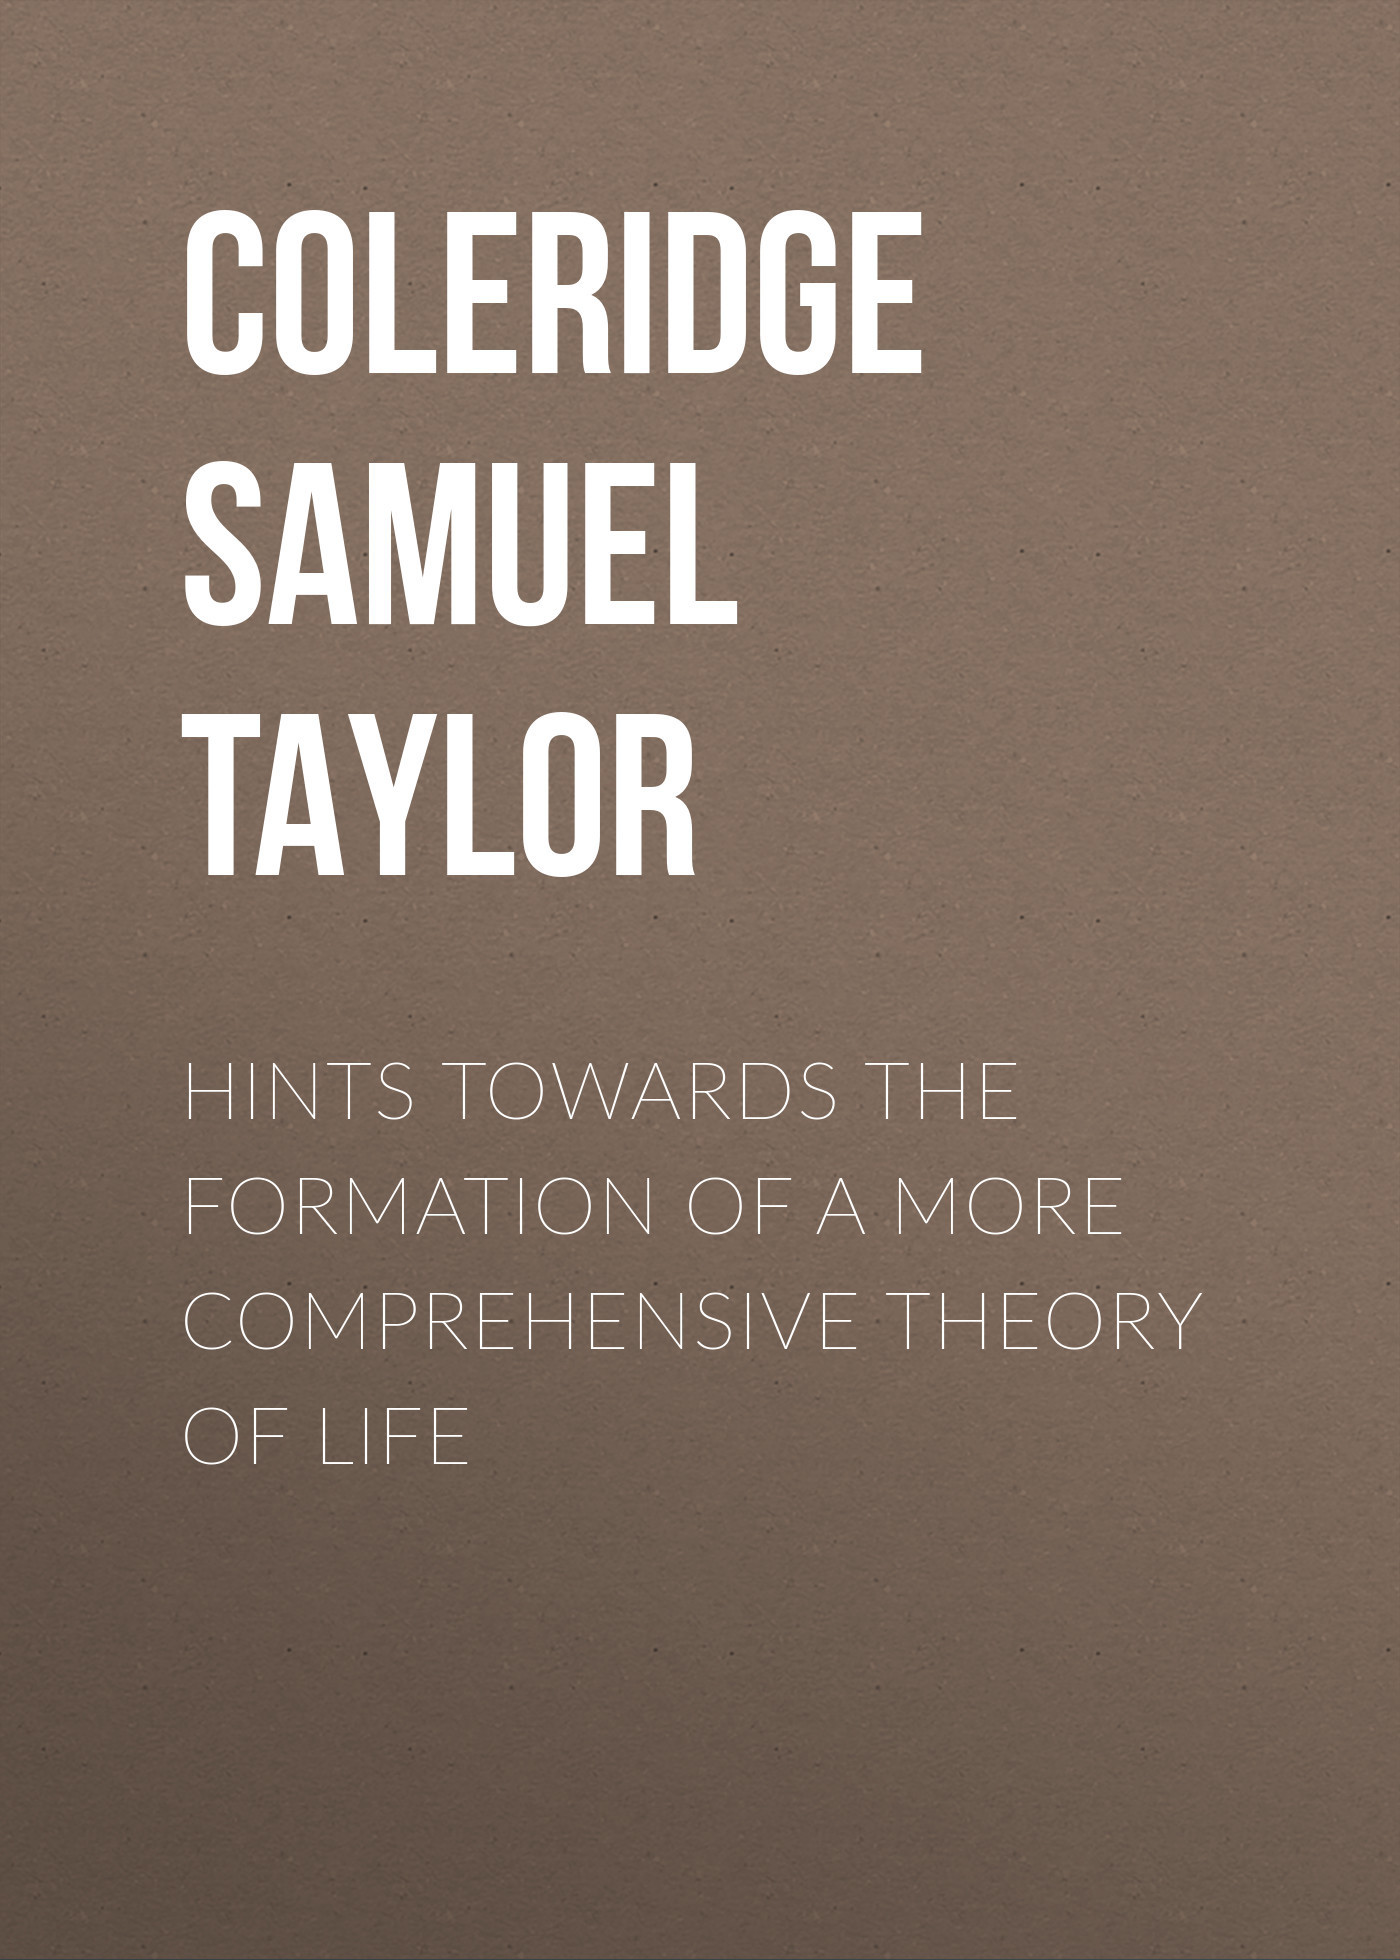 Coleridge Samuel Taylor Hints towards the formation of a more comprehensive theory of life strategies behind humor formation a discourse pragmatic aspect